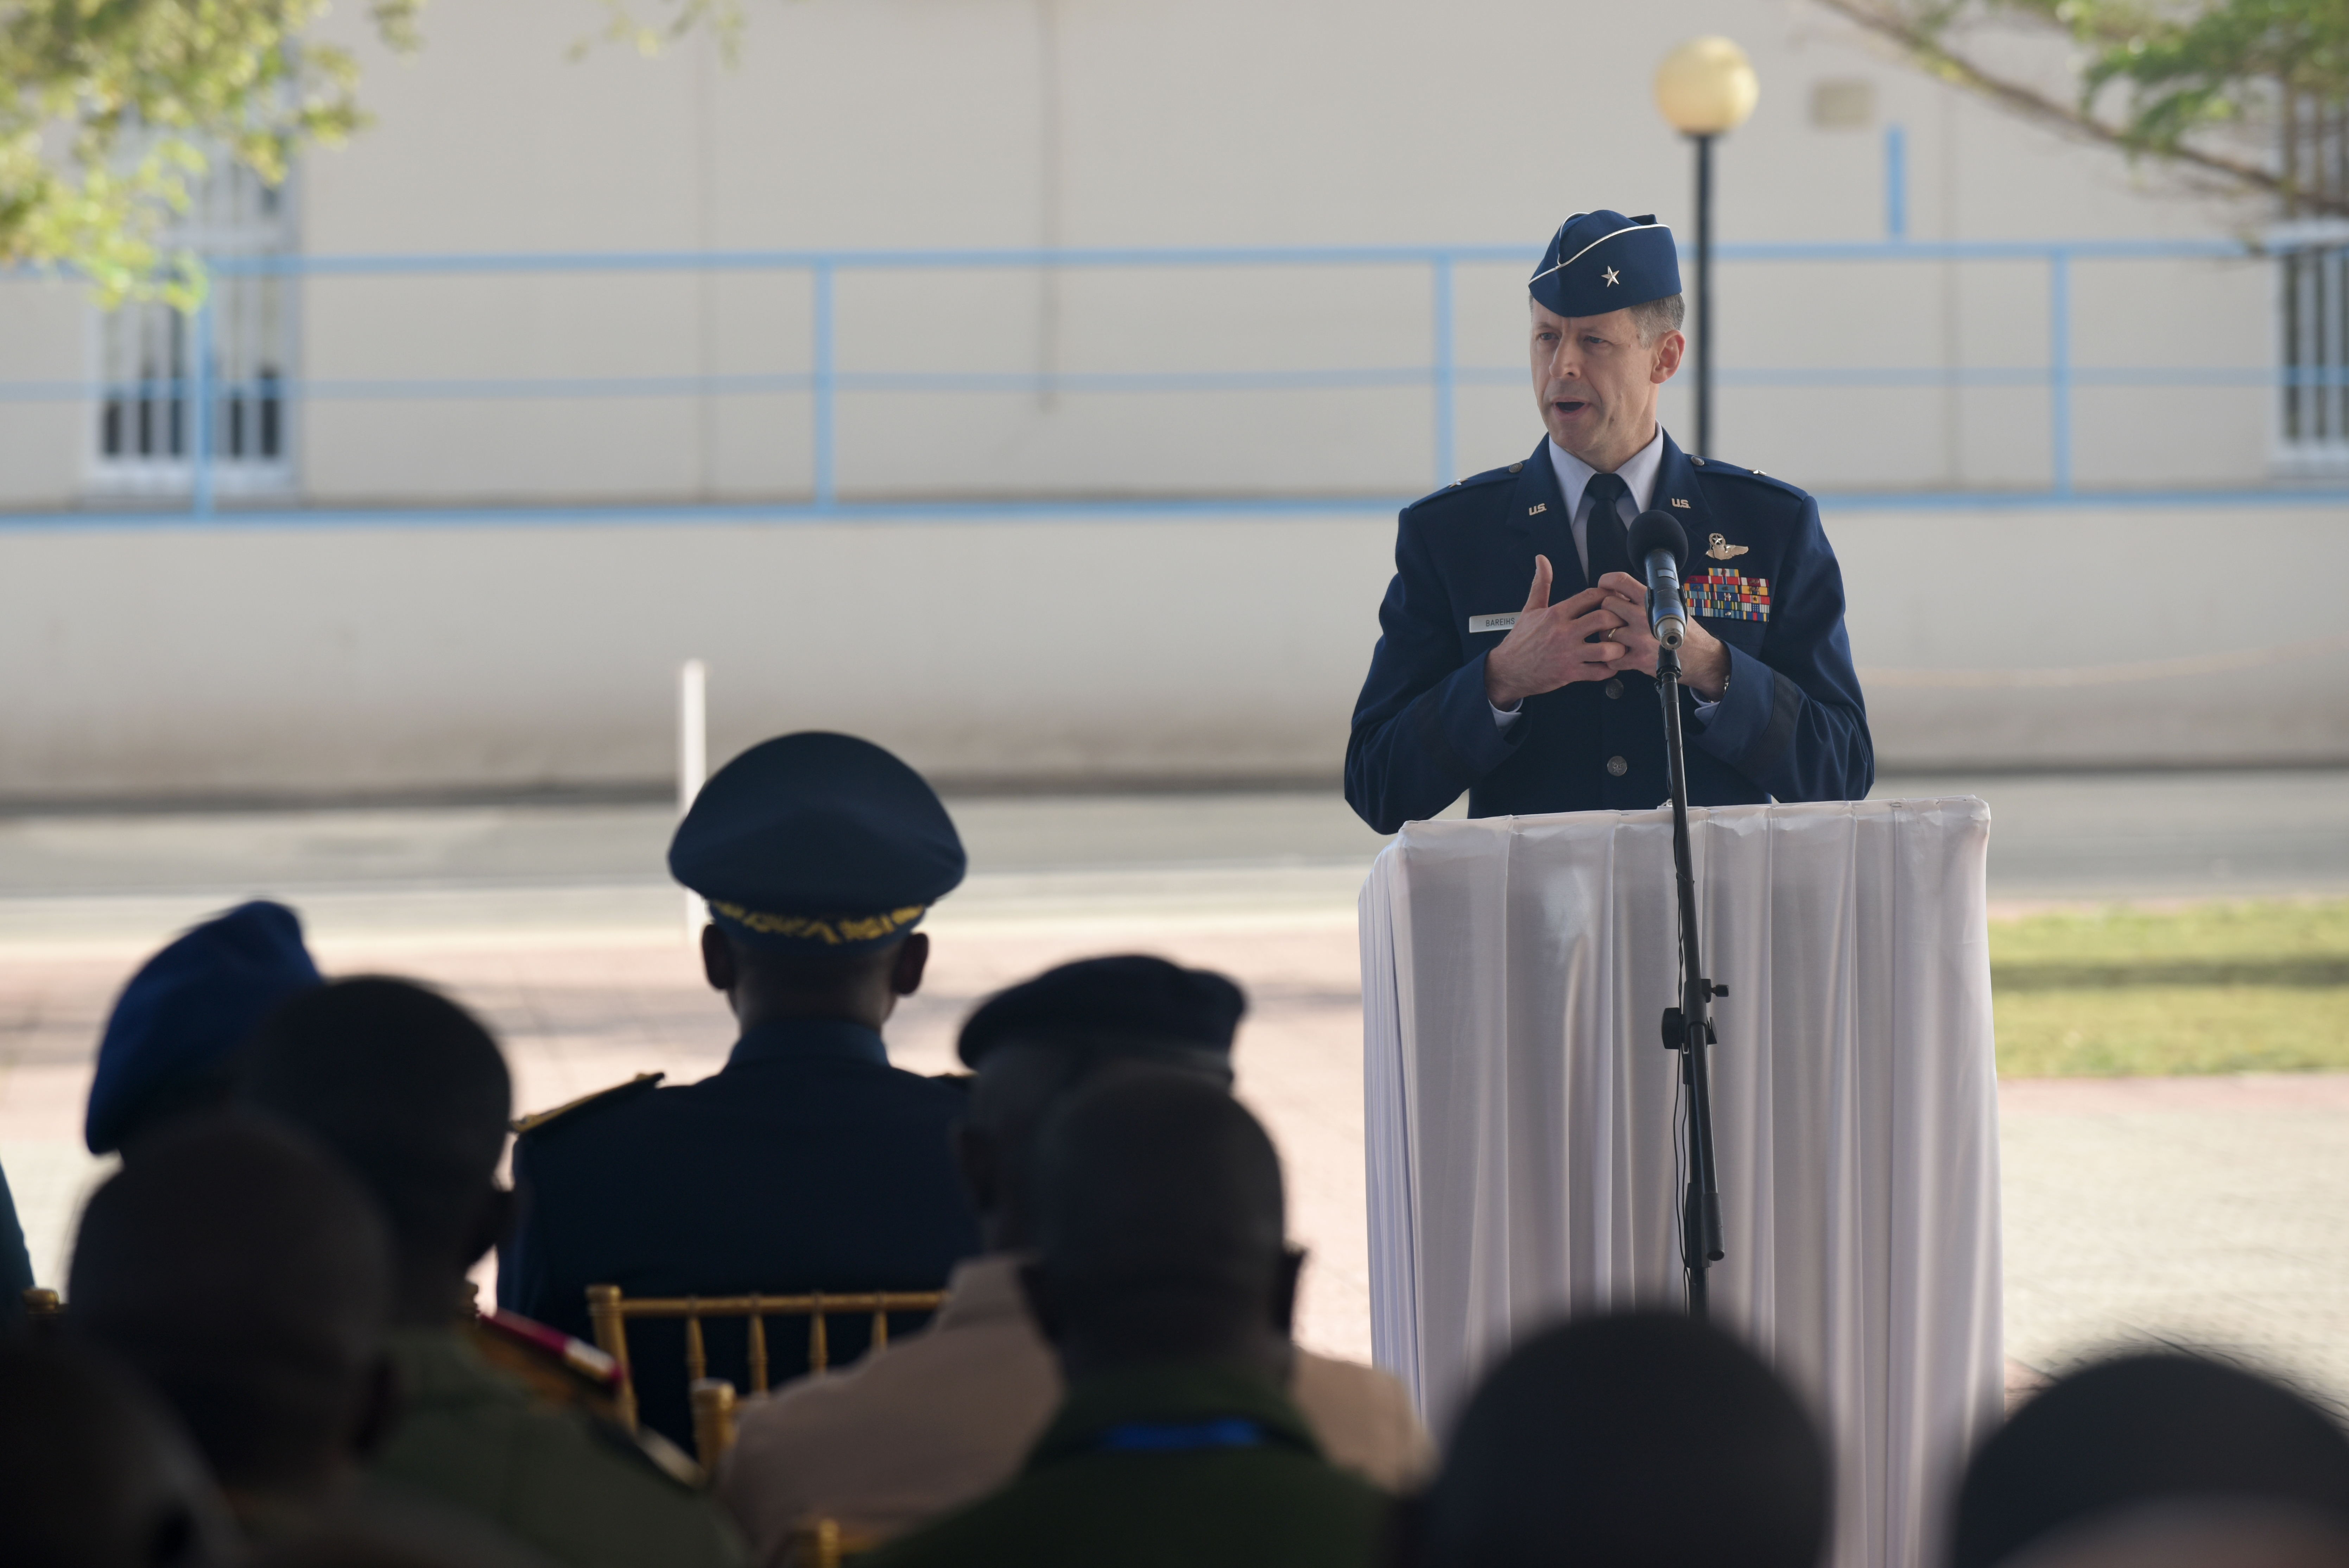 U.S. Air Force Brig. Gen. Dieter Bareihs, U.S. Air Forces in Africa director of plans, programs and analyses, speaks during the opening ceremony of African Partnership Flight Senegal at Captain Andalla Cissé Air Base, Senegal, March 19, 2018. The APF program is U.S. Air Forces in Africa's premier security cooperation program with African partner nations to improve professional military aviation knowledge and skills. (U.S. Air Force photo by Airman 1st Class Eli Chevalier)